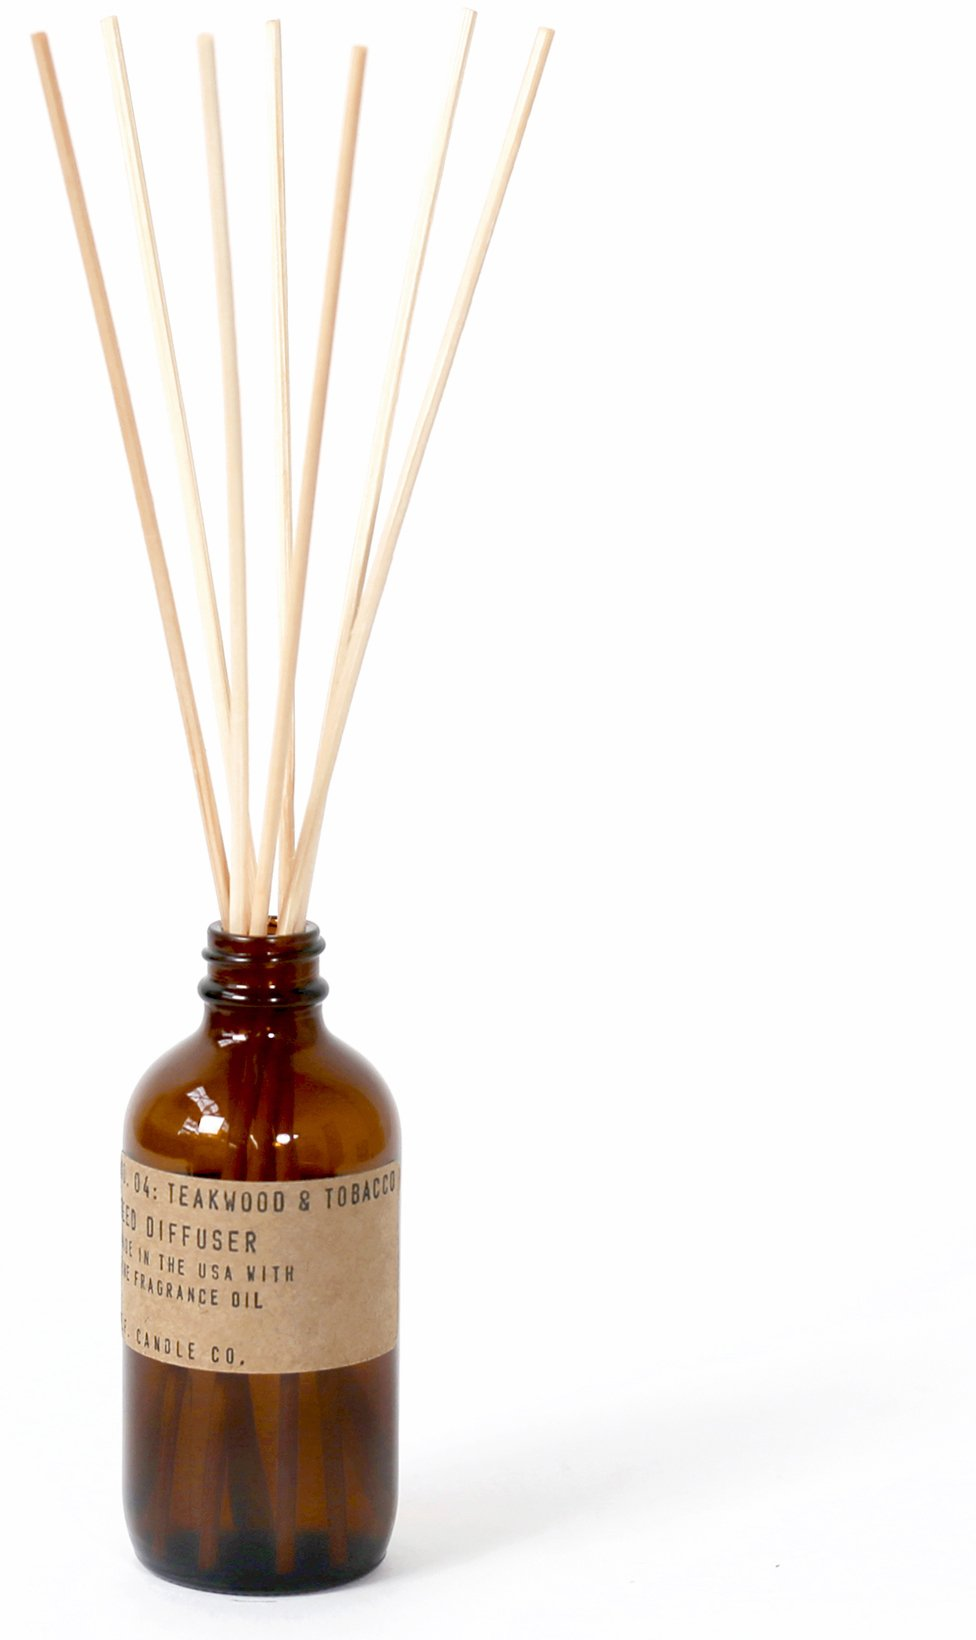 P.F. Candle Co. - No. 04: Teakwood & Tobacco Diffuser by P.F. Candle Co.